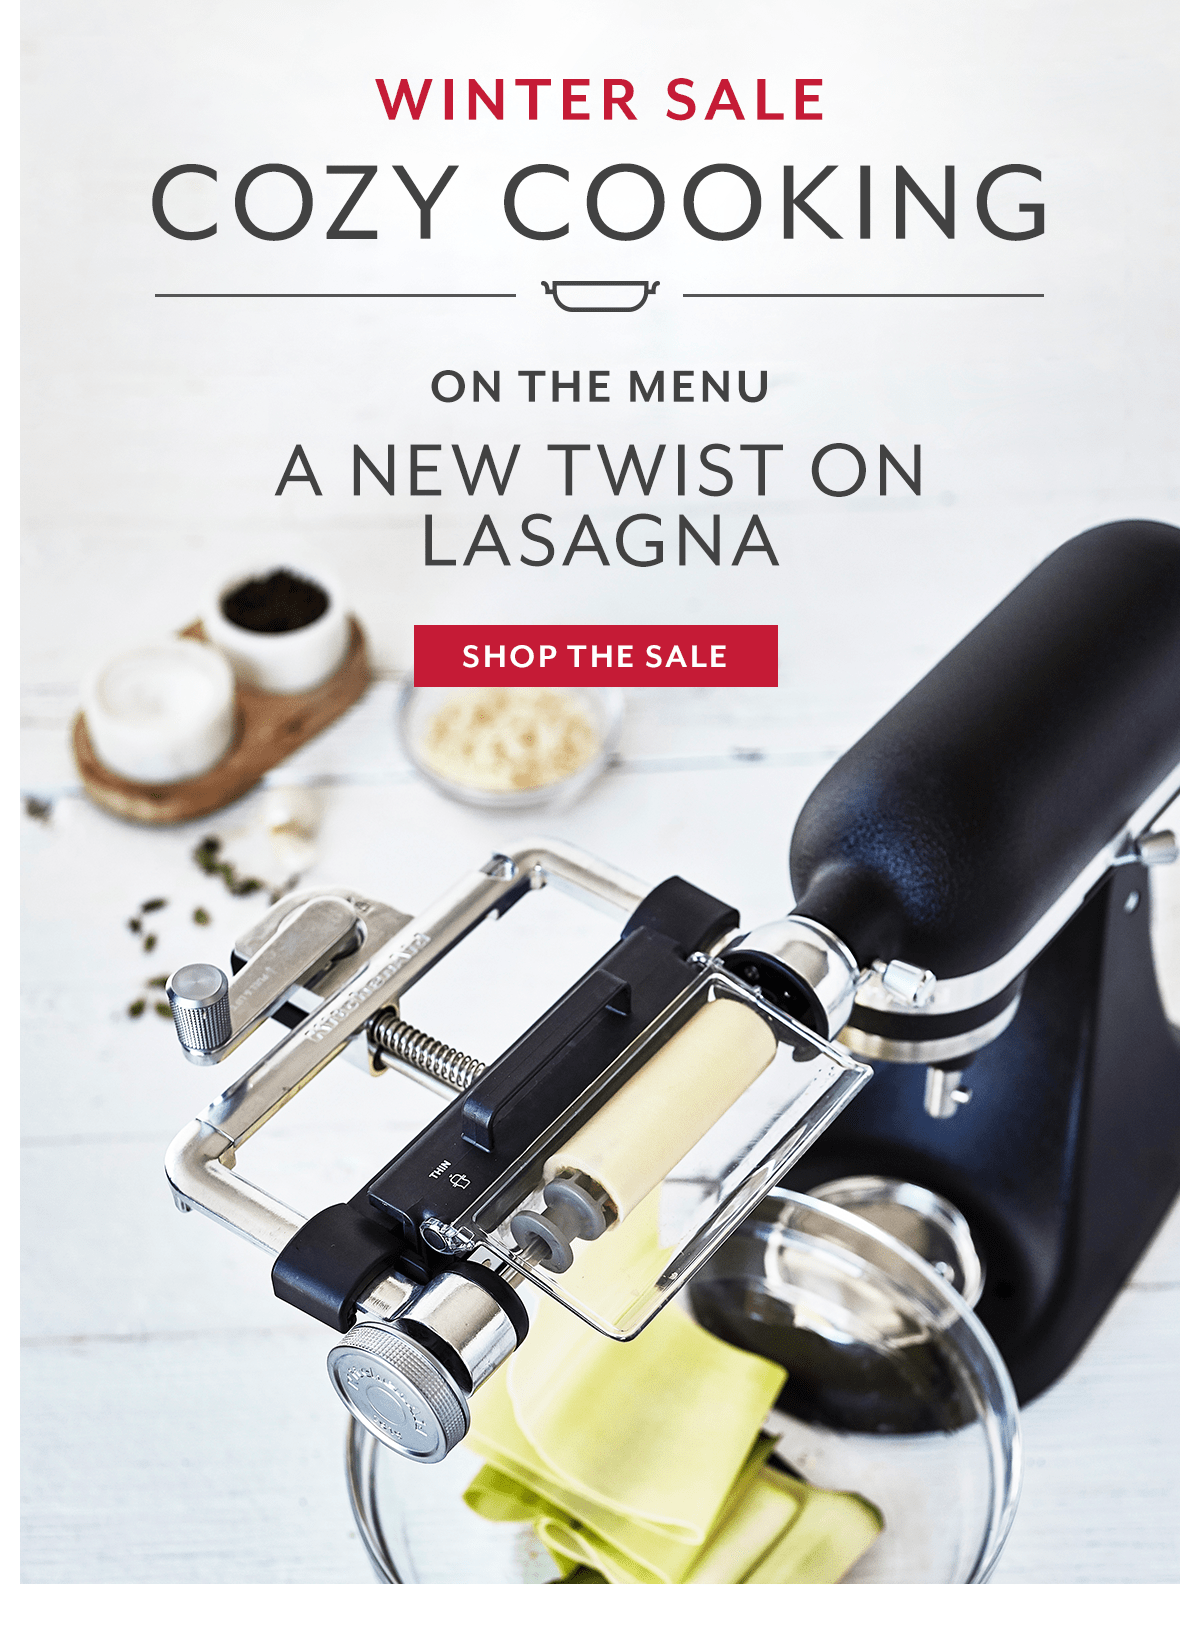 Cozy Cooking • A New Twist on Lasagna